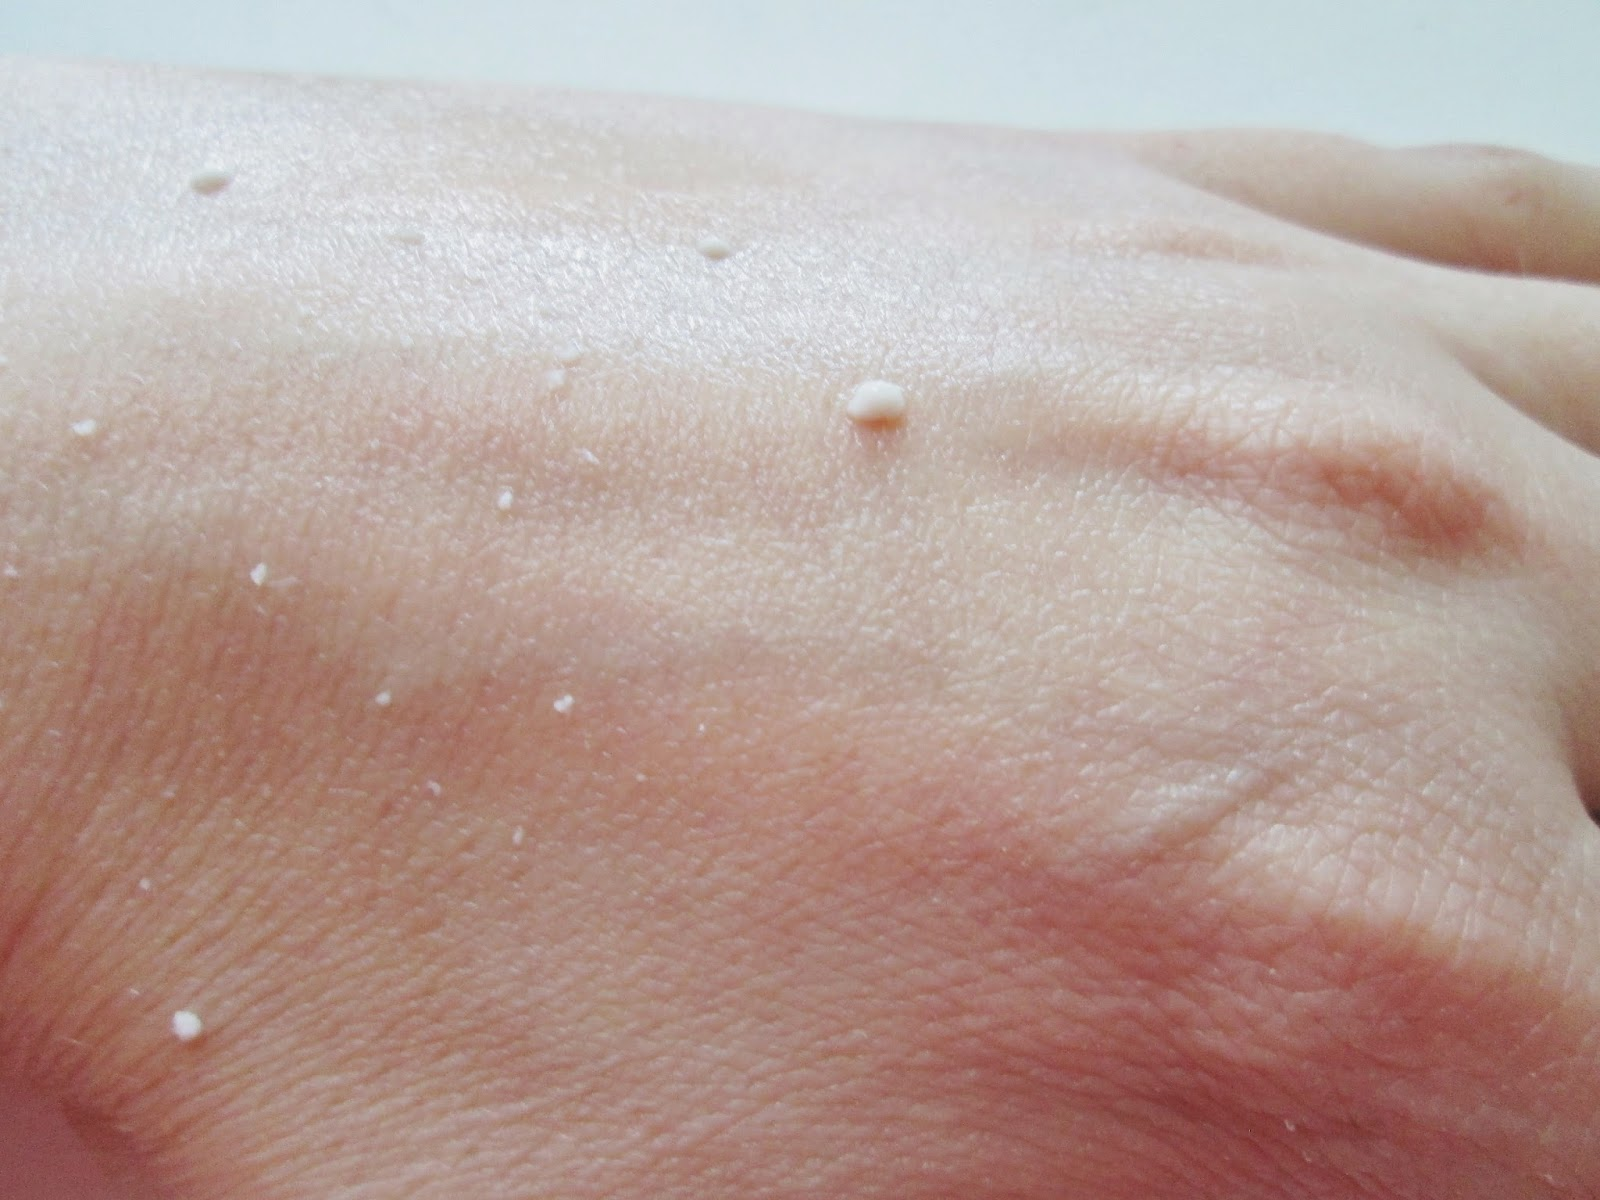 Amy's hand, covered in balls of dead skin that's been released with MICA's exfoliating gel.